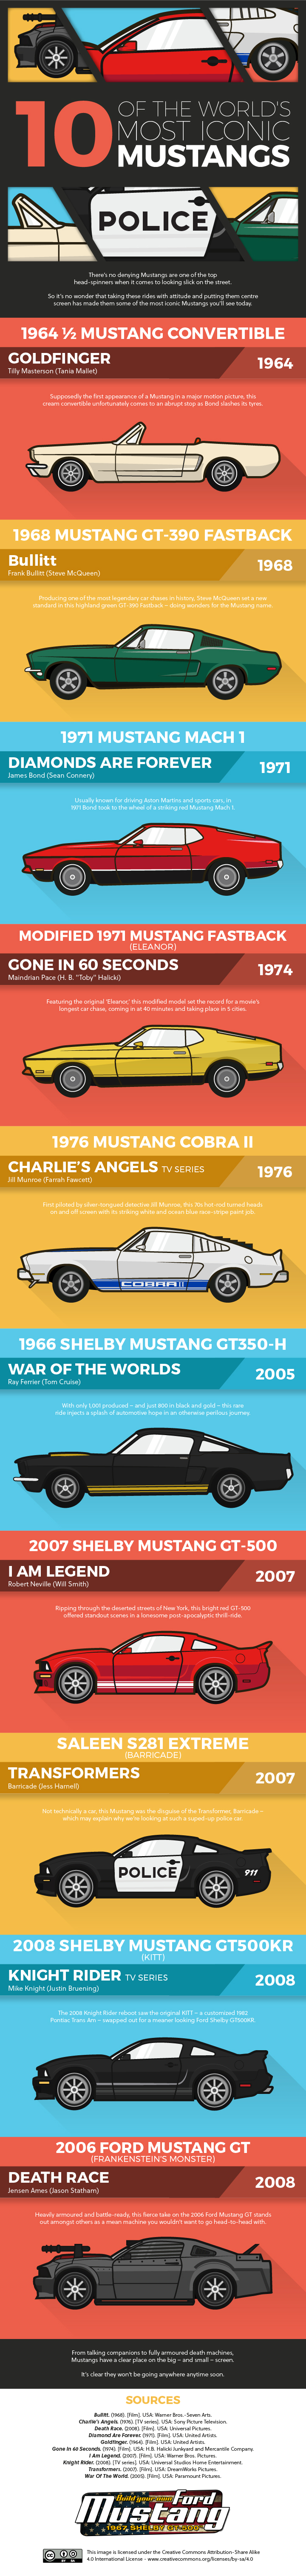 Infographic image showing the top 10 most iconic Mustangs from cinema, as part of a blog about the Top 10 Most Iconic Mustangs on Film